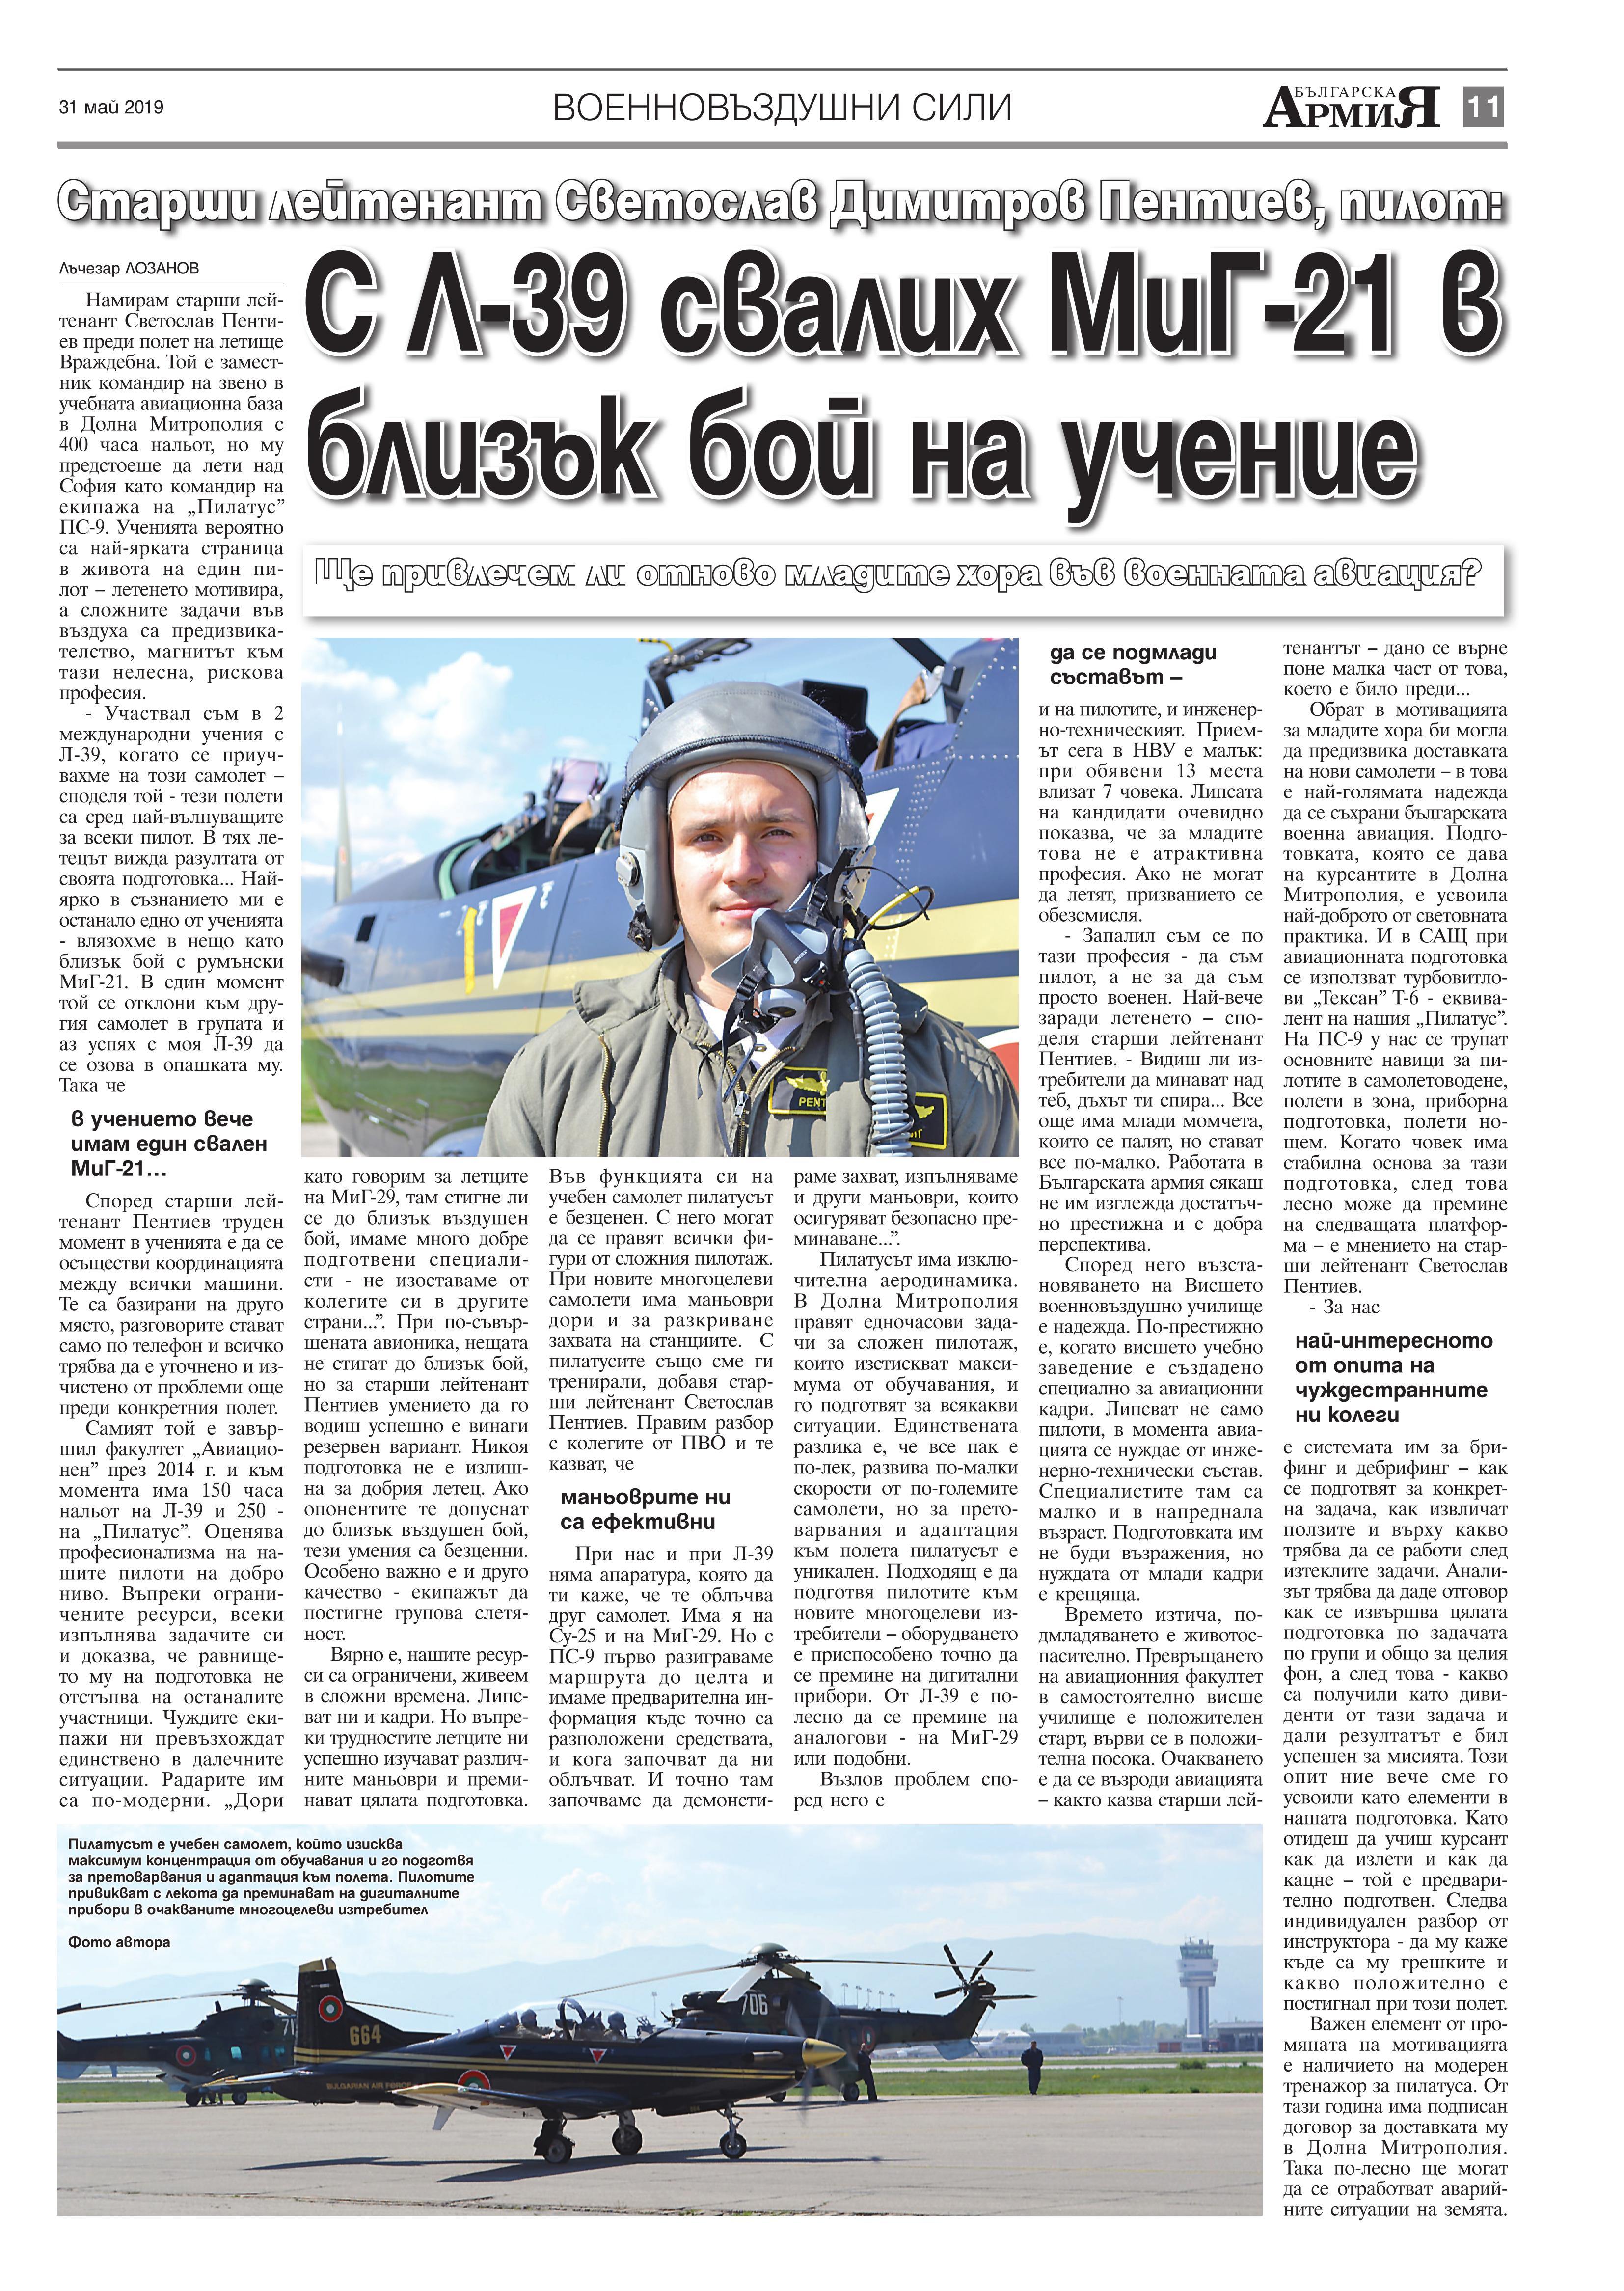 https://armymedia.bg/wp-content/uploads/2015/06/11.page1_-97.jpg